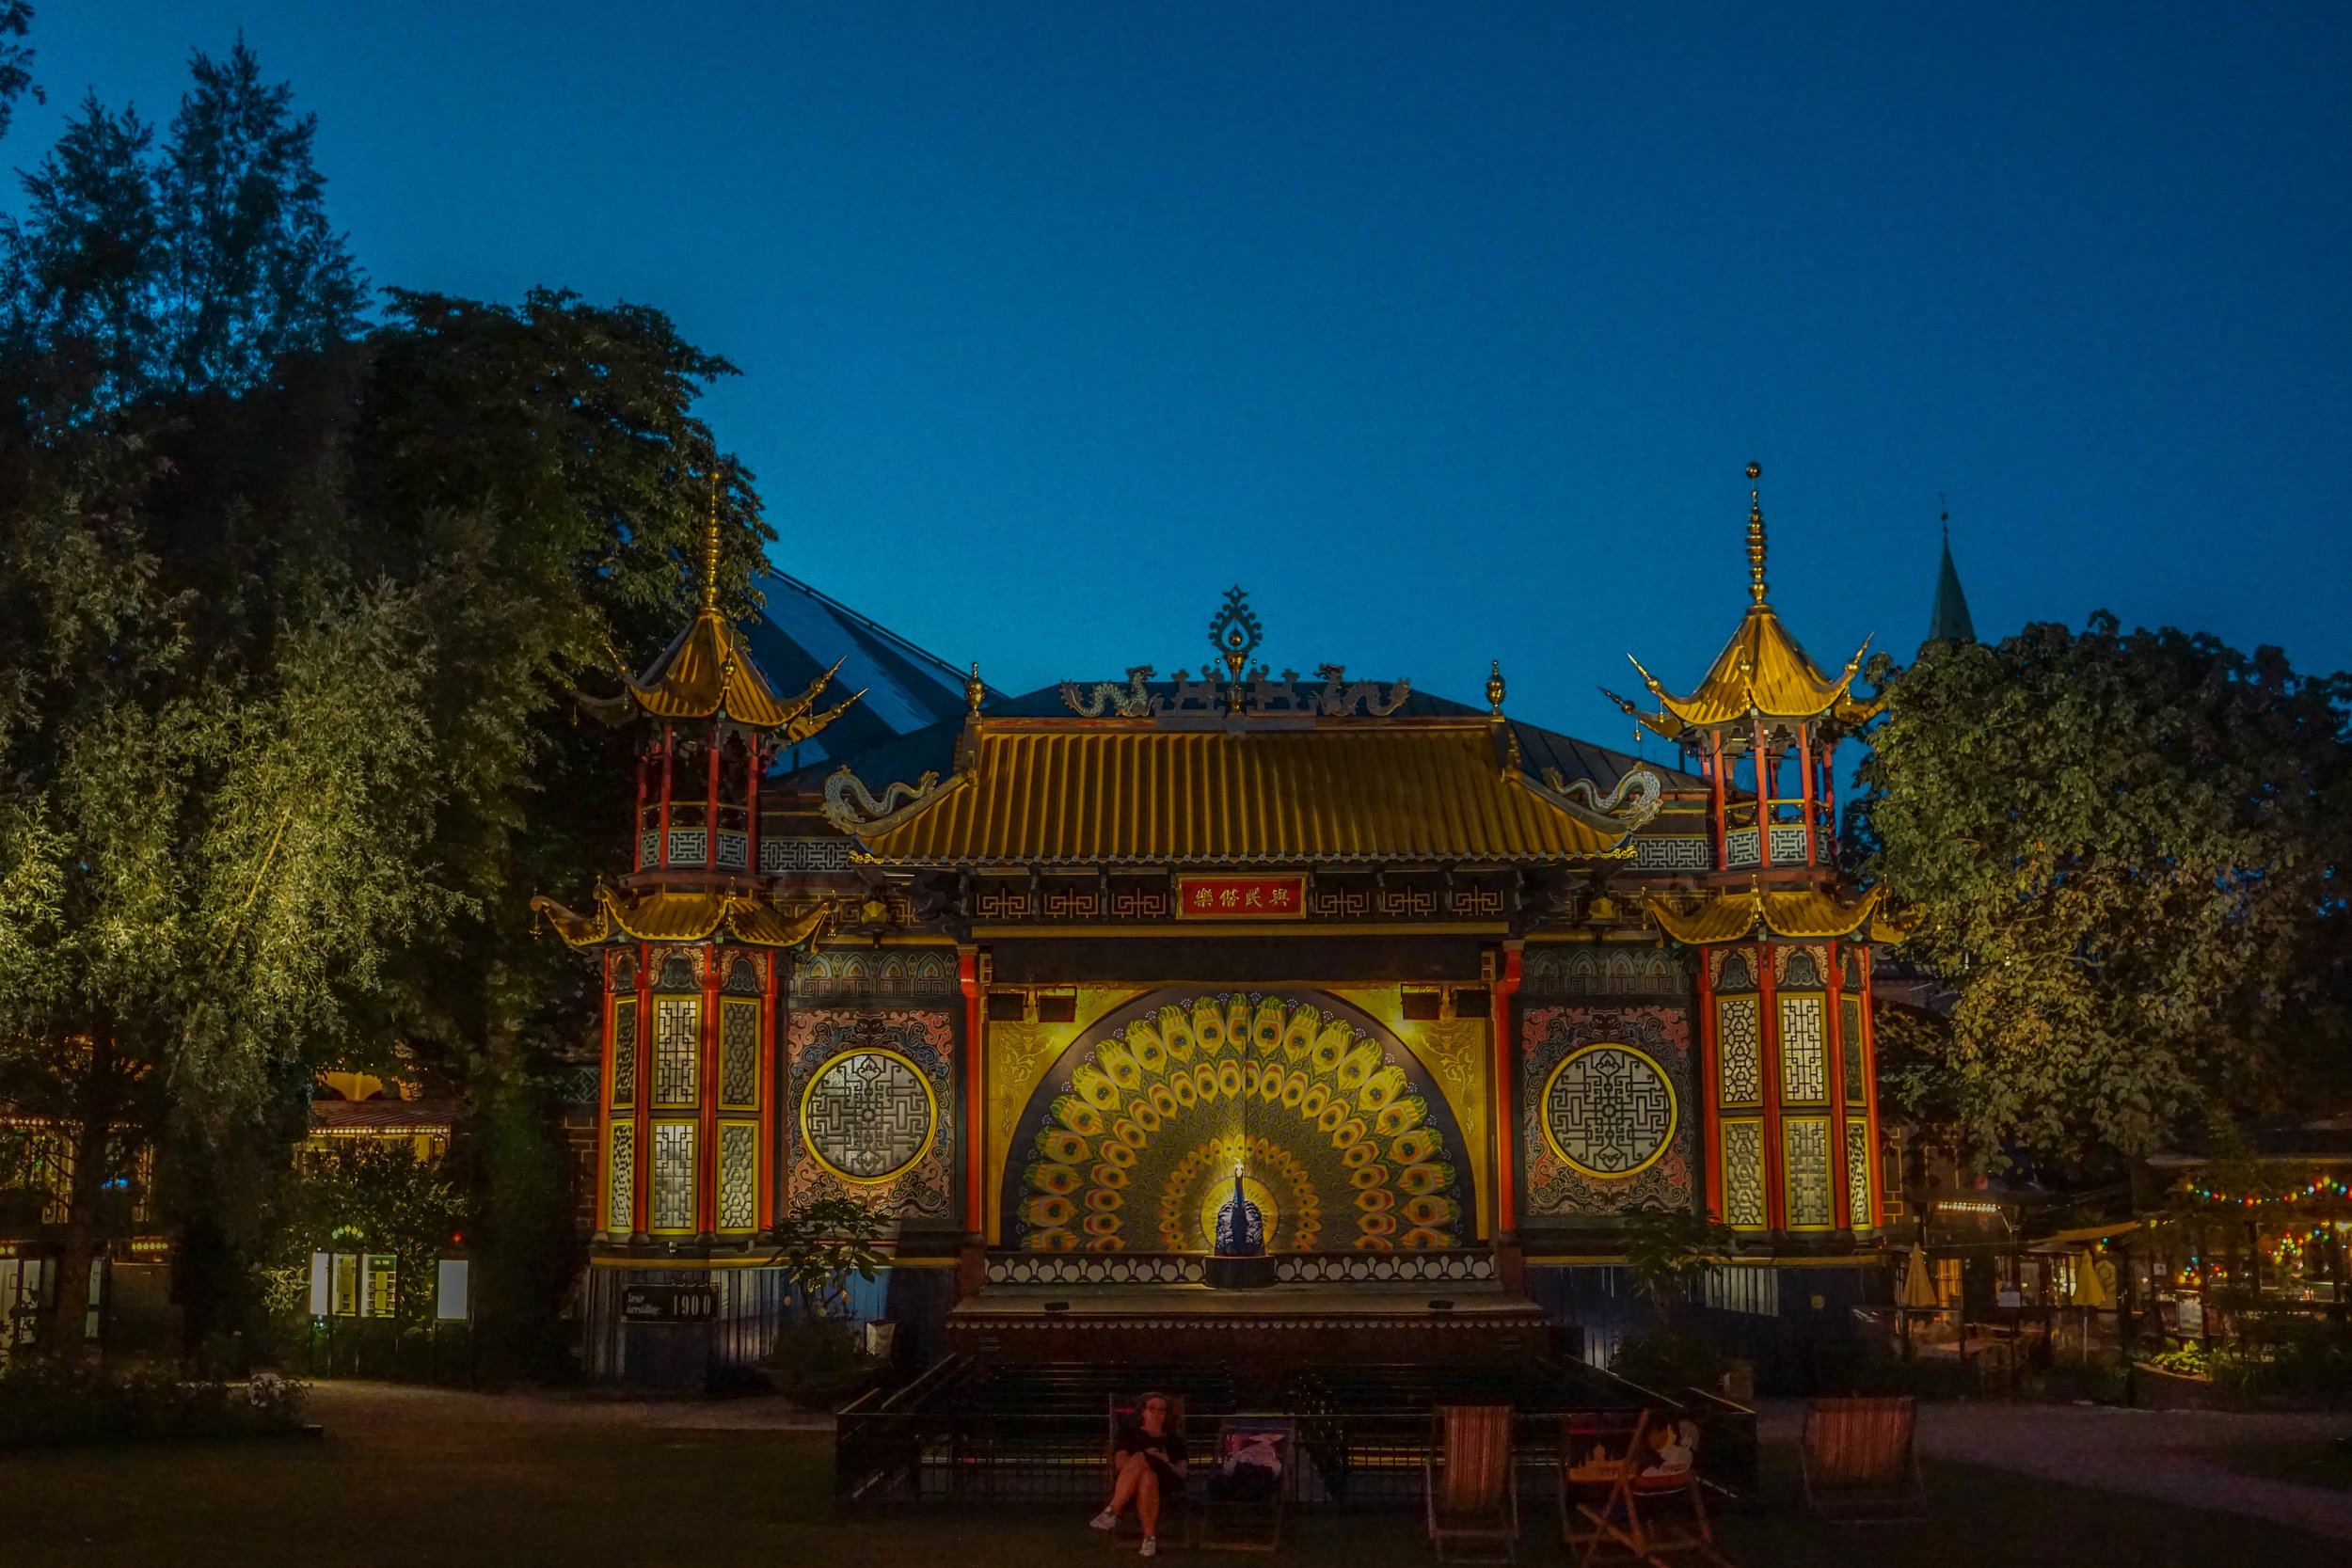 The Pantomime Peacock theater at Tivoli Gardens is the park's oldest building.